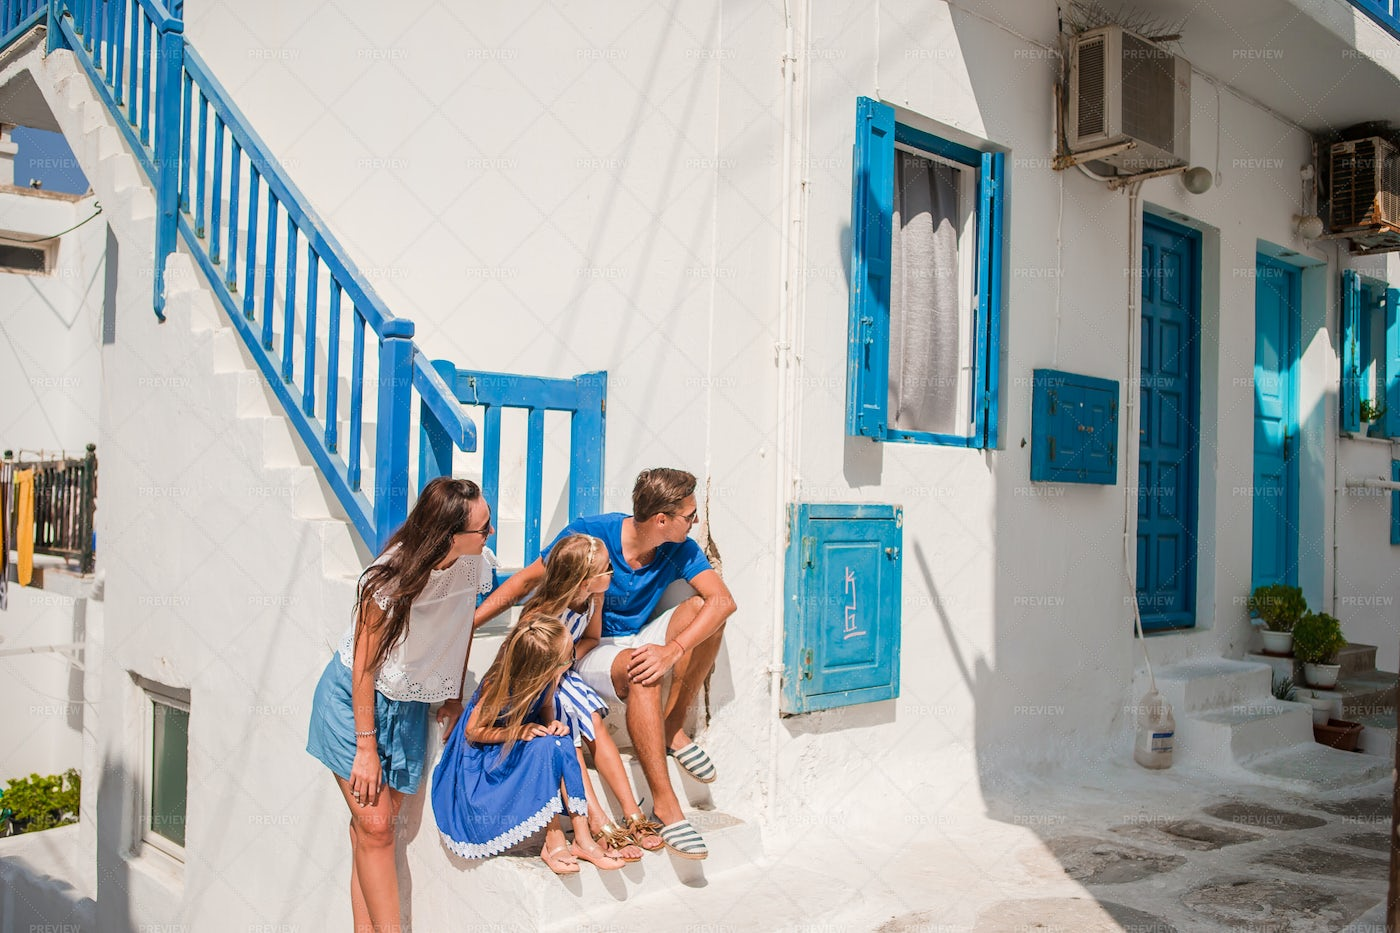 Family On A Stoop In Greece: Stock Photos